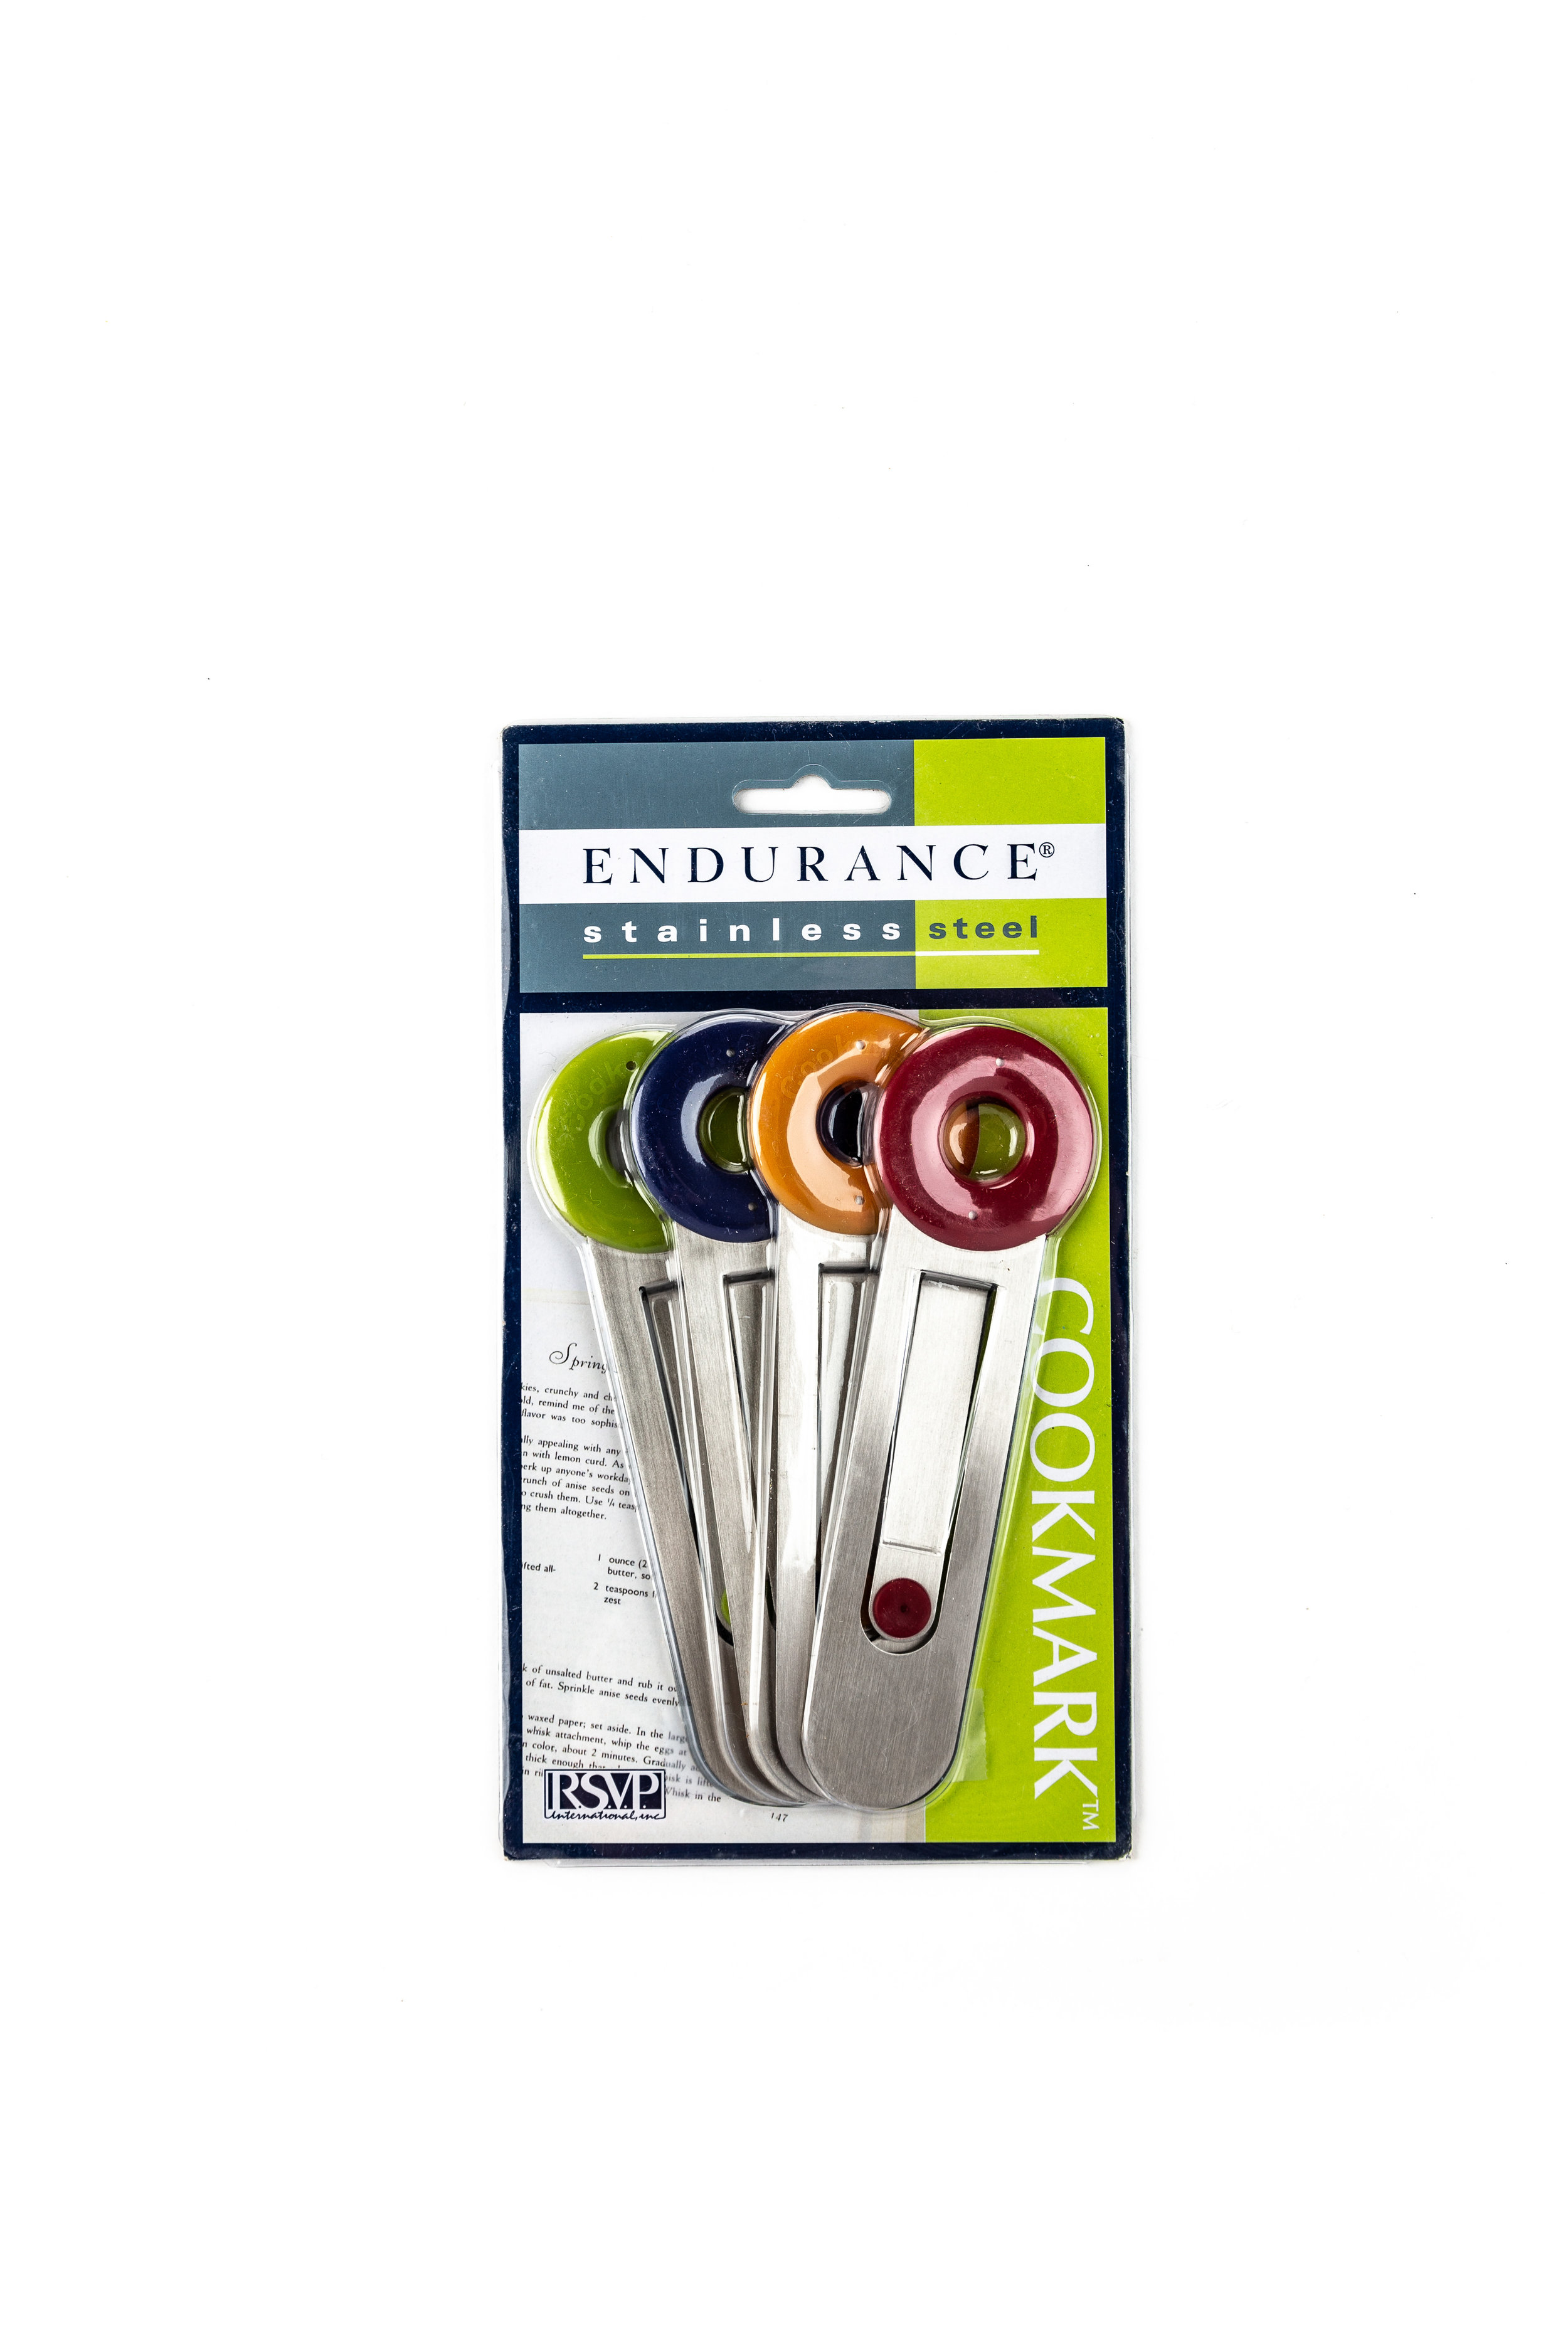 A Trident_KitchenProducts_0212.jpg